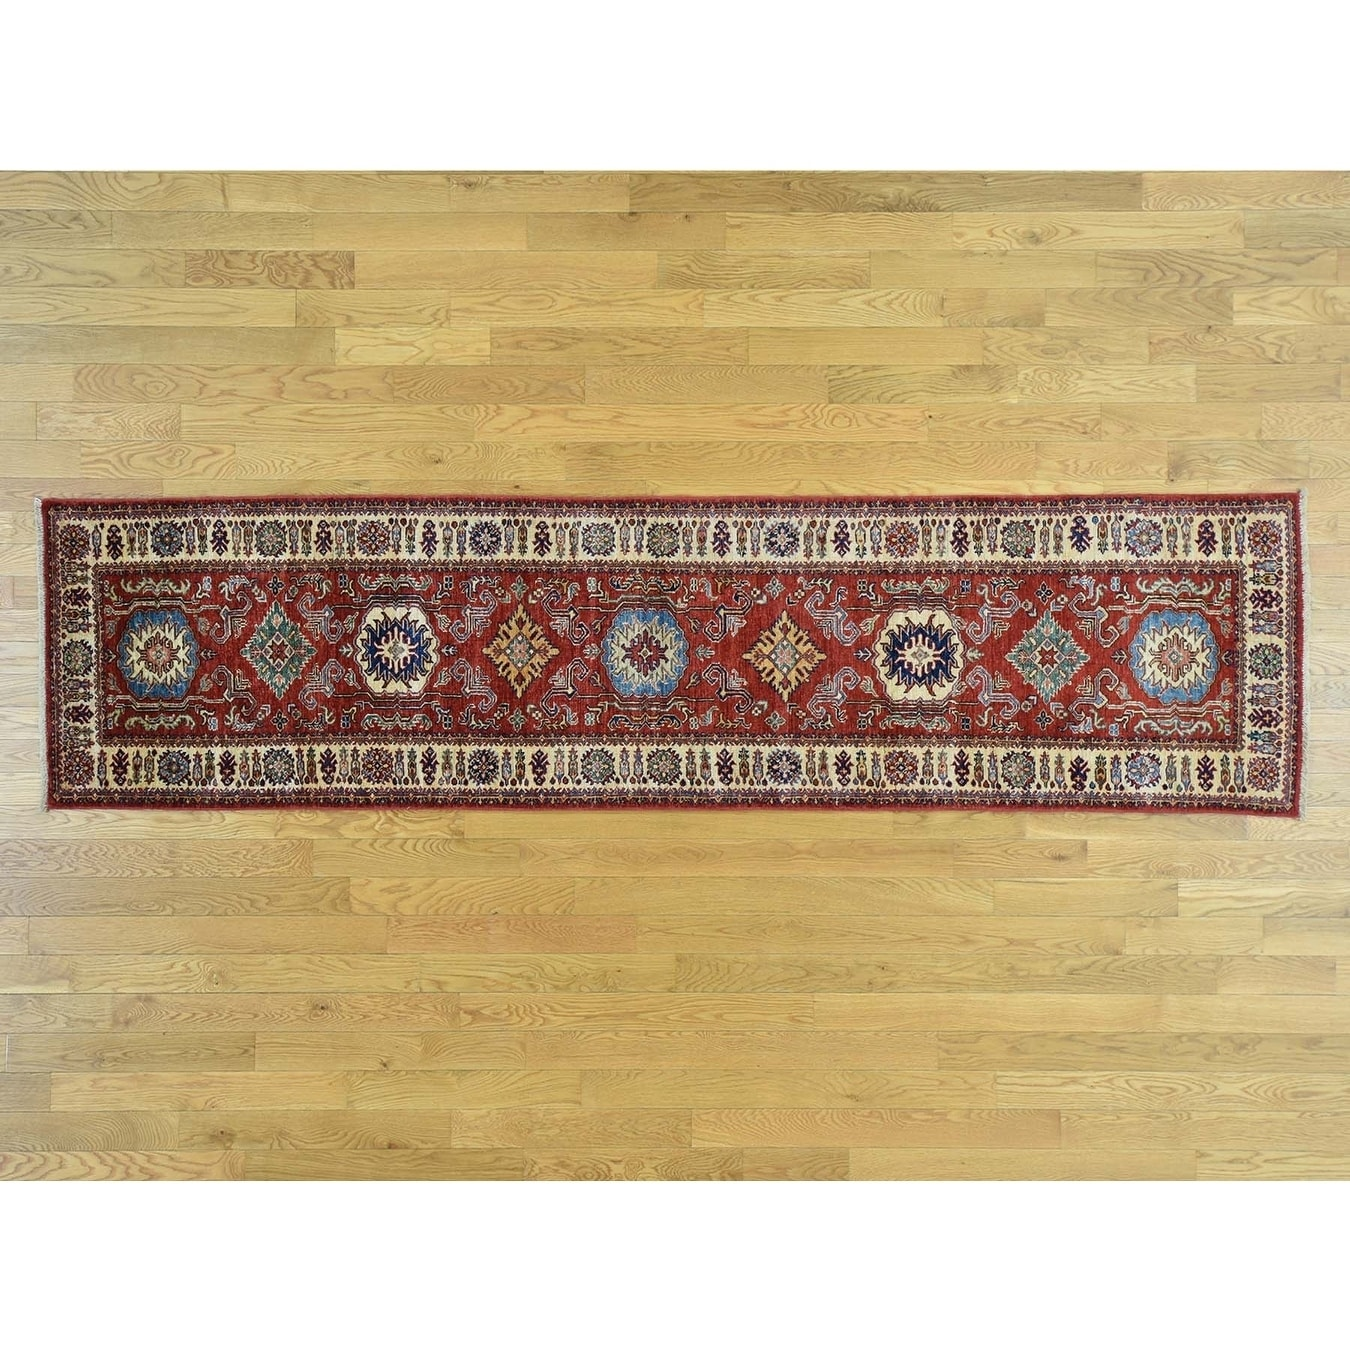 Hand Knotted Red Kazak with Wool Oriental Rug - 27 x 105